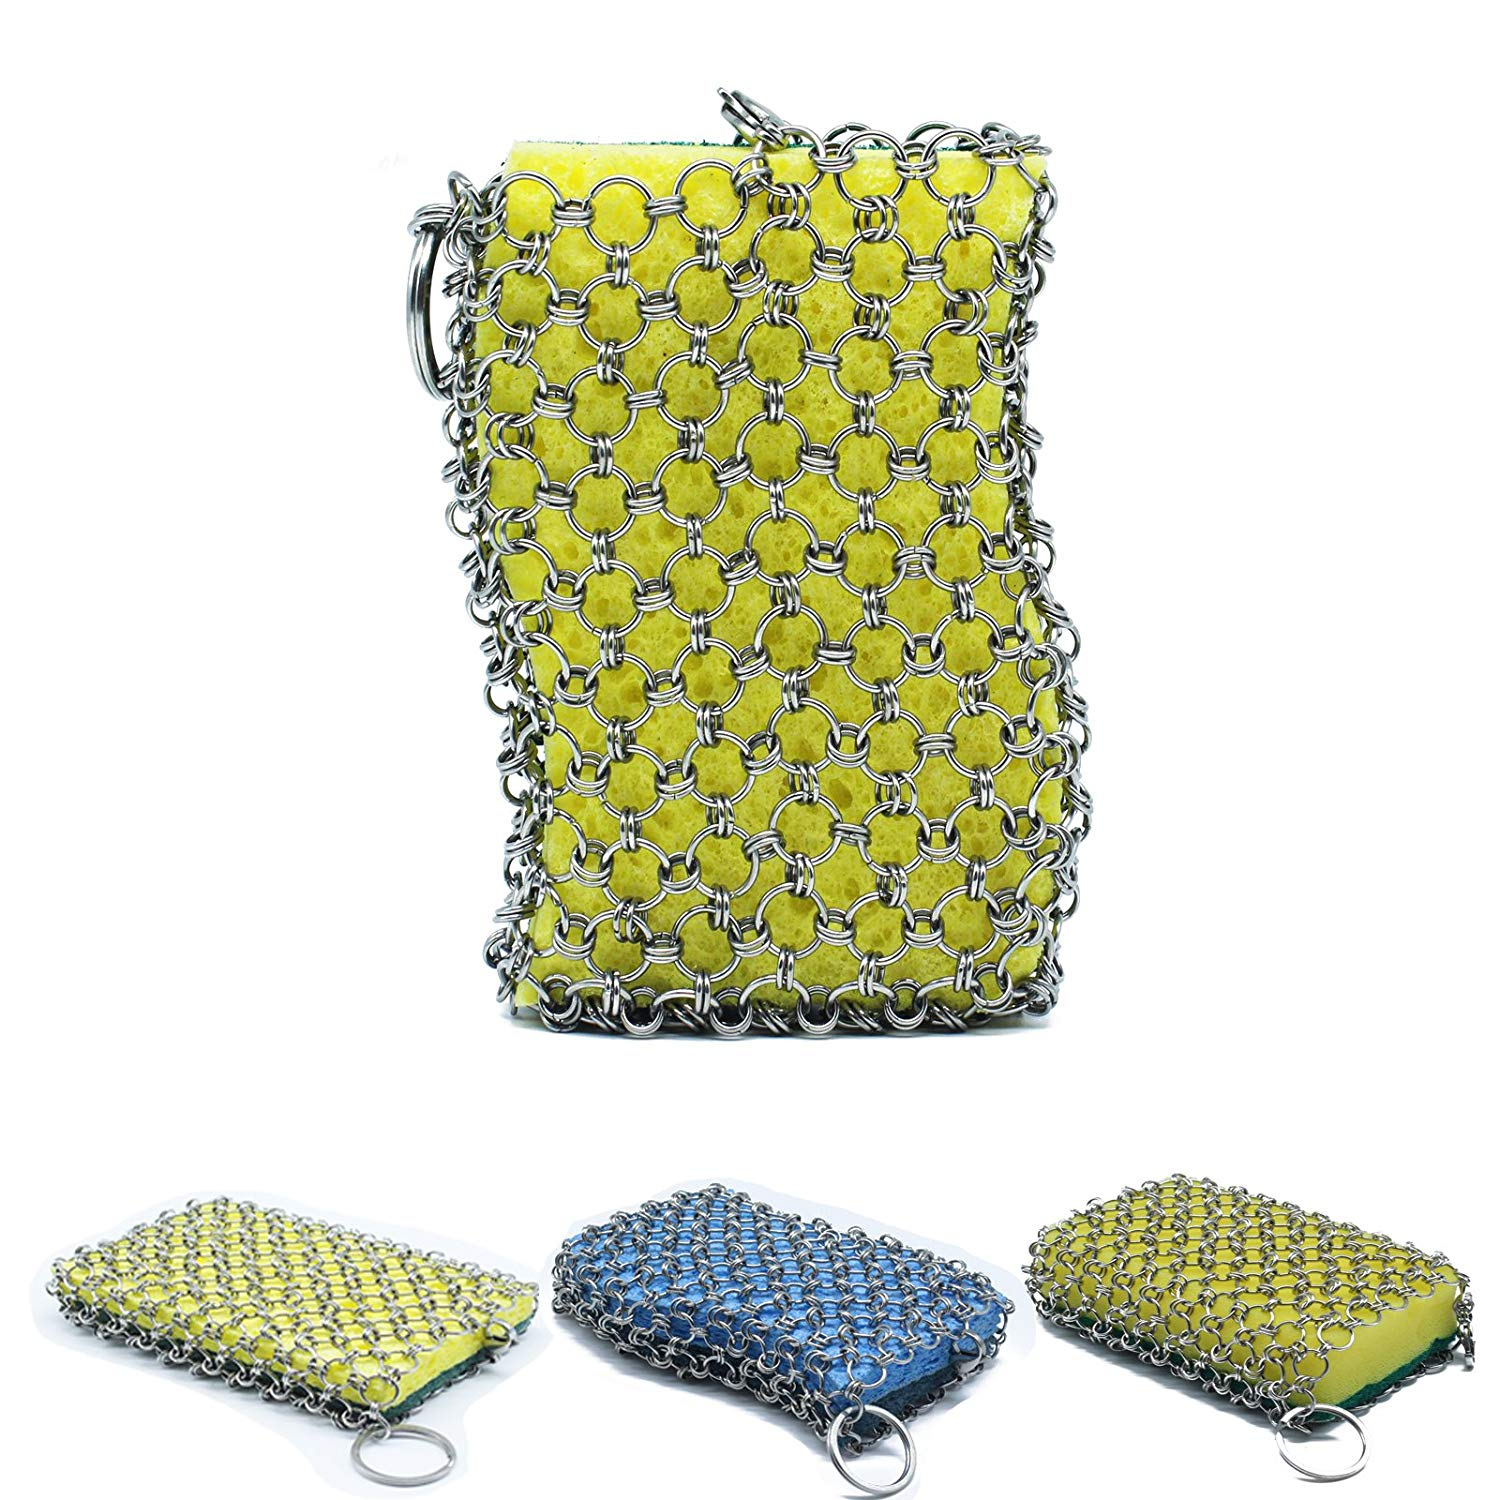 The Original good grips cast iron cleaner with wood pulp sponge, faster Chainmail Scrubber for cast iron skillet,cookware,pan,counters, sinks- oil free,no soap need,pan Scraper for Camping (yellow)